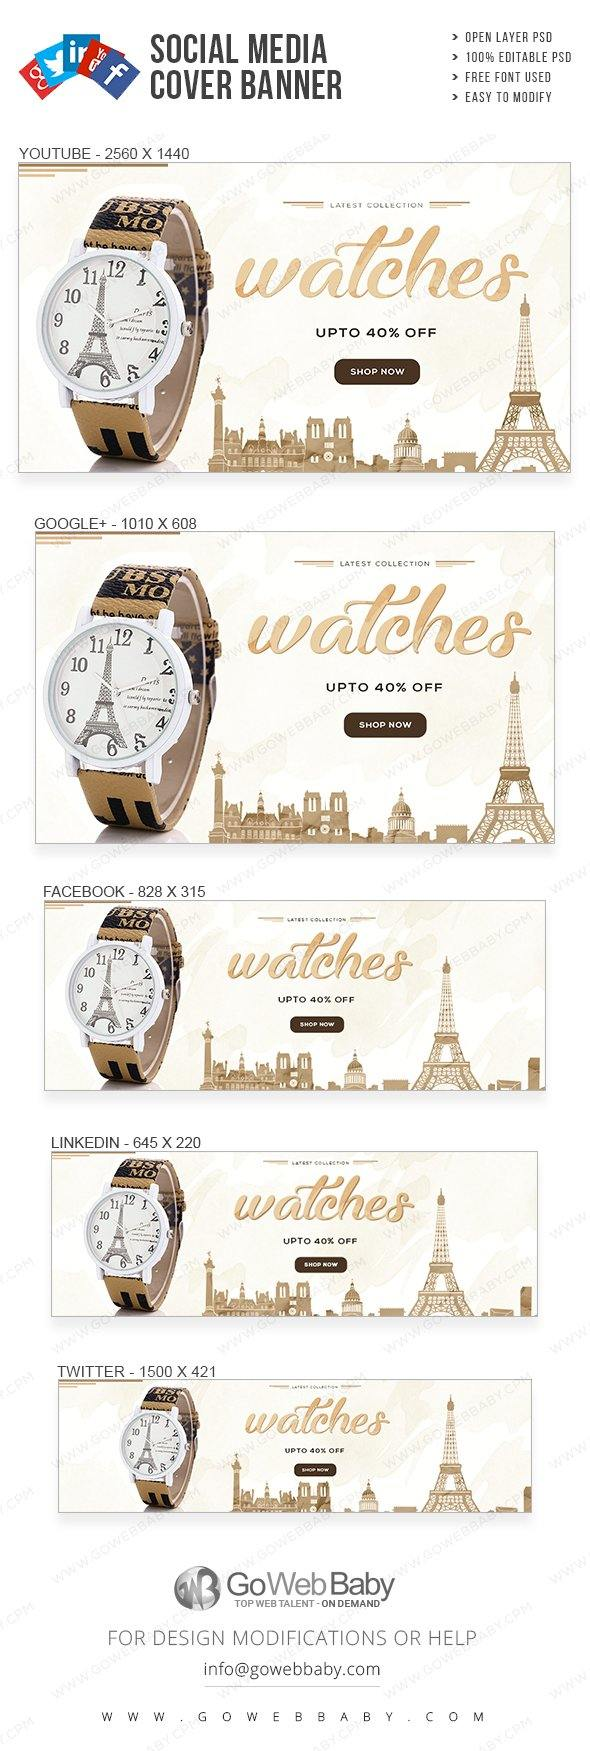 Social Media Cover Banner - Watch Collection For Website Marketing